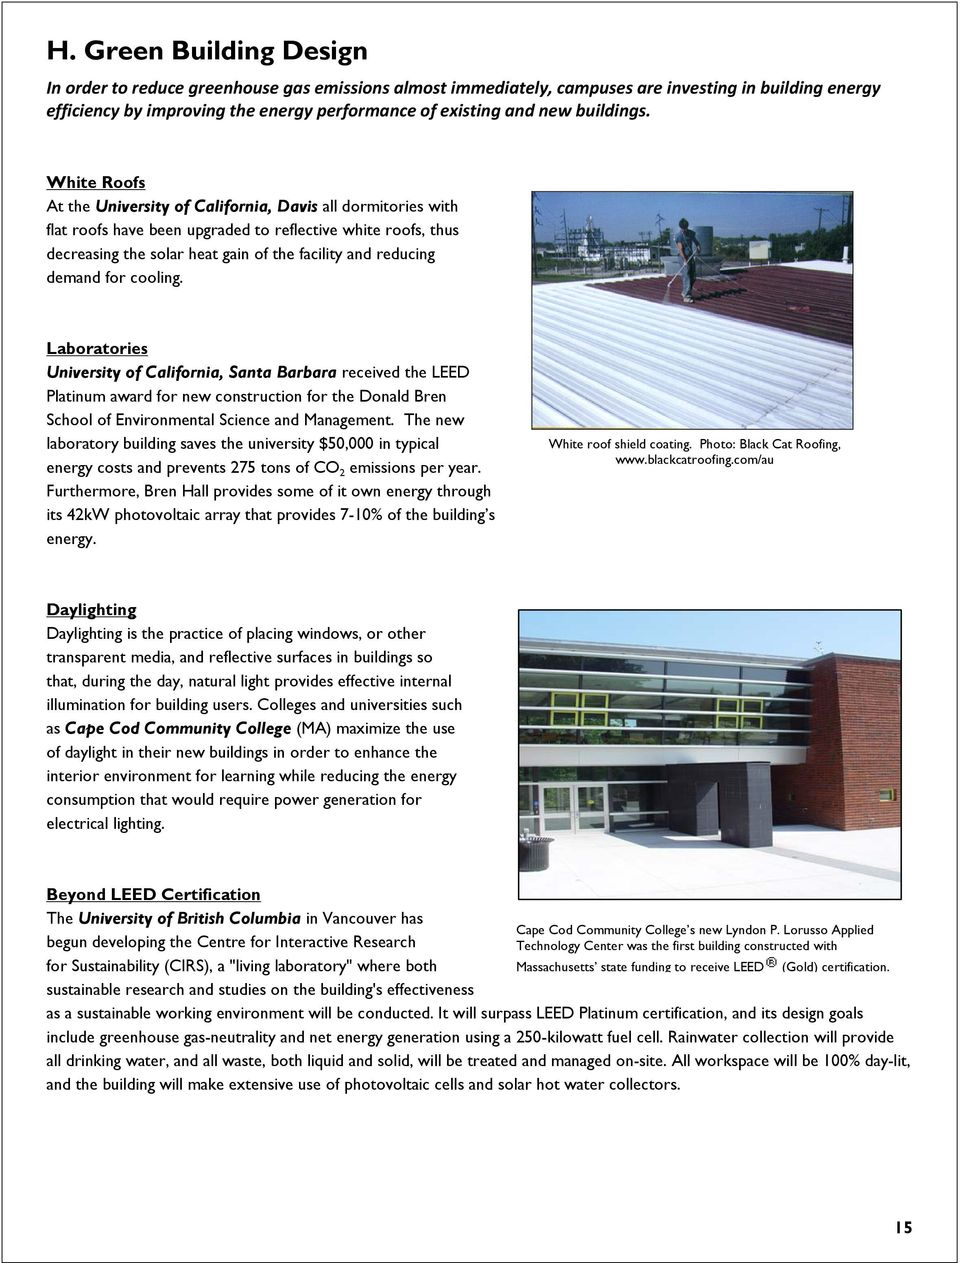 White Roofs At the University of California, Davis all dormitories with flat roofs have been upgraded to reflective white roofs, thus decreasing the solar heat gain of the facility and reducing